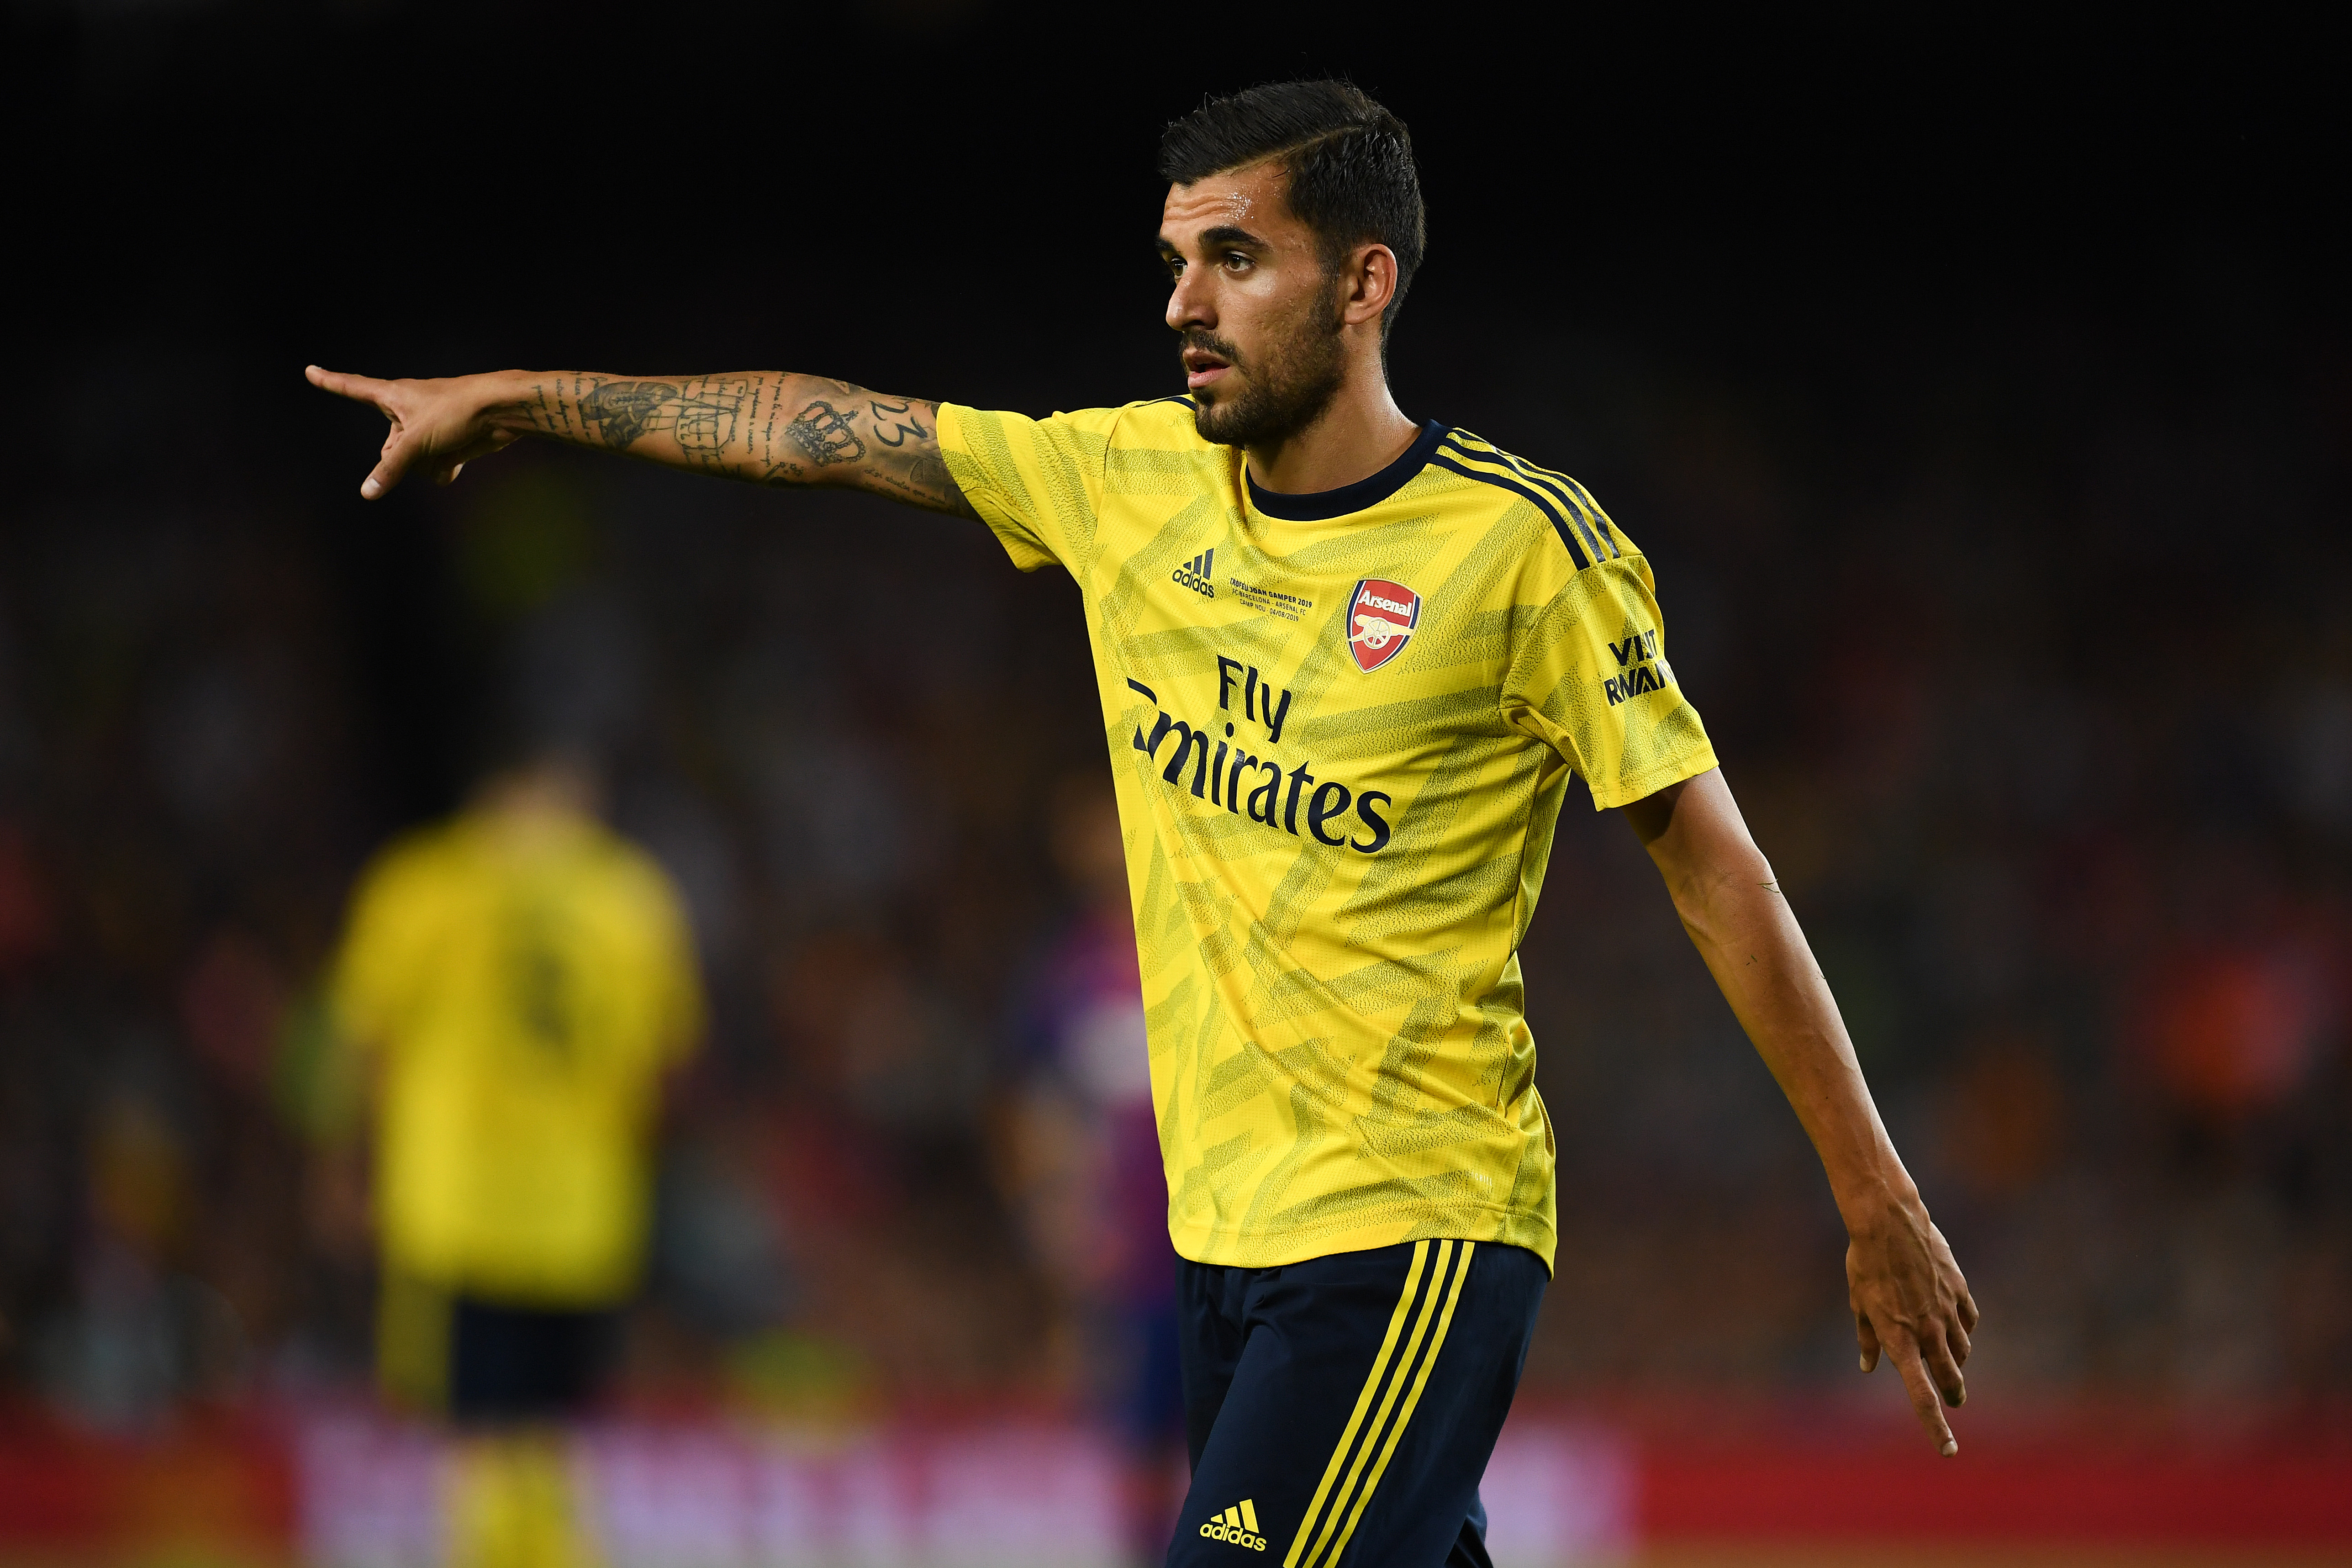 Ceballos accumulated 40 appearances for Arsenal last season. (Photo by David Ramos/Getty Images)